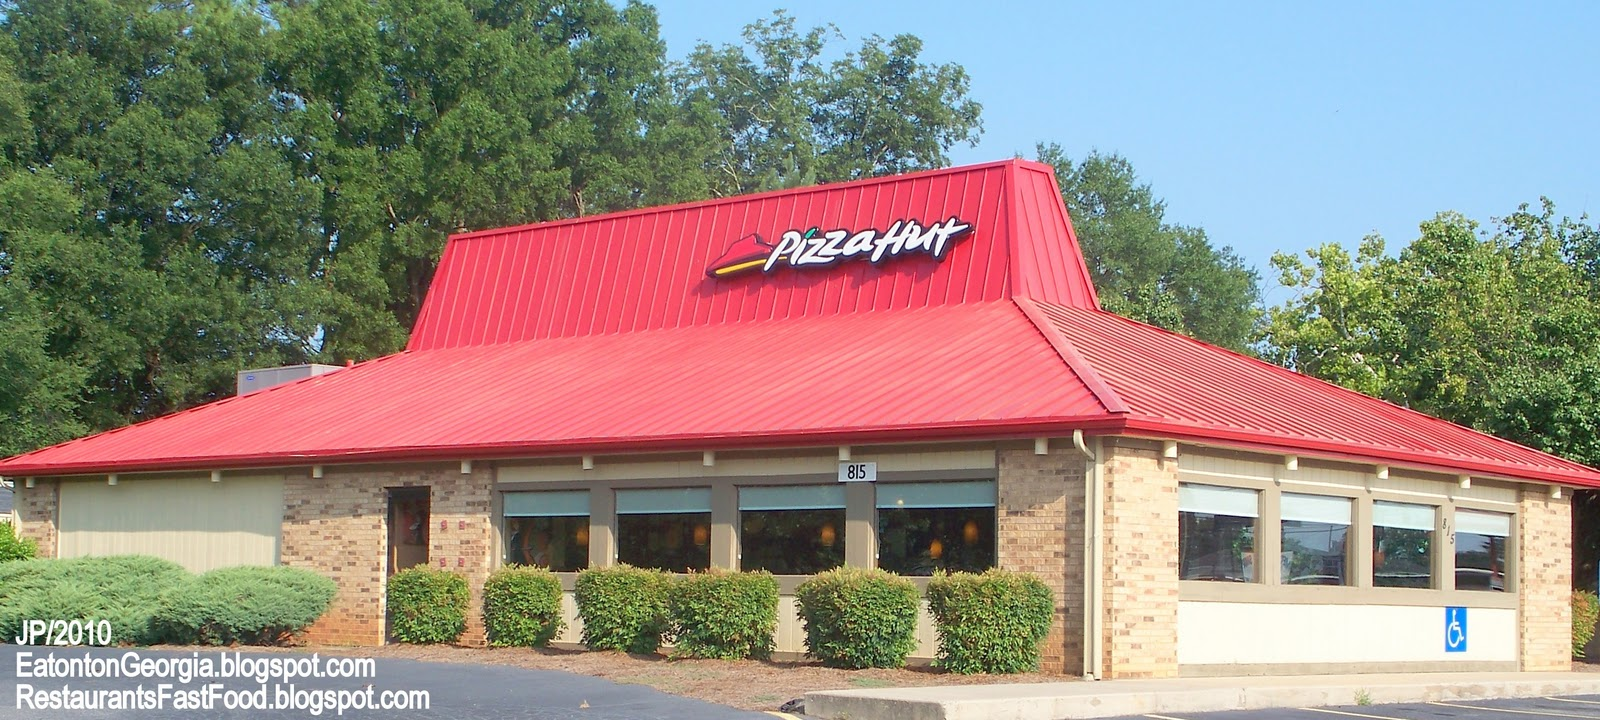 5 items · Find 40 listings related to Pizza Hut On 10th Street in Street on exsanew-49rs8091.ga See reviews, photos, directions, phone numbers and more for Pizza Hut On 10th Street locations in Street, MD.